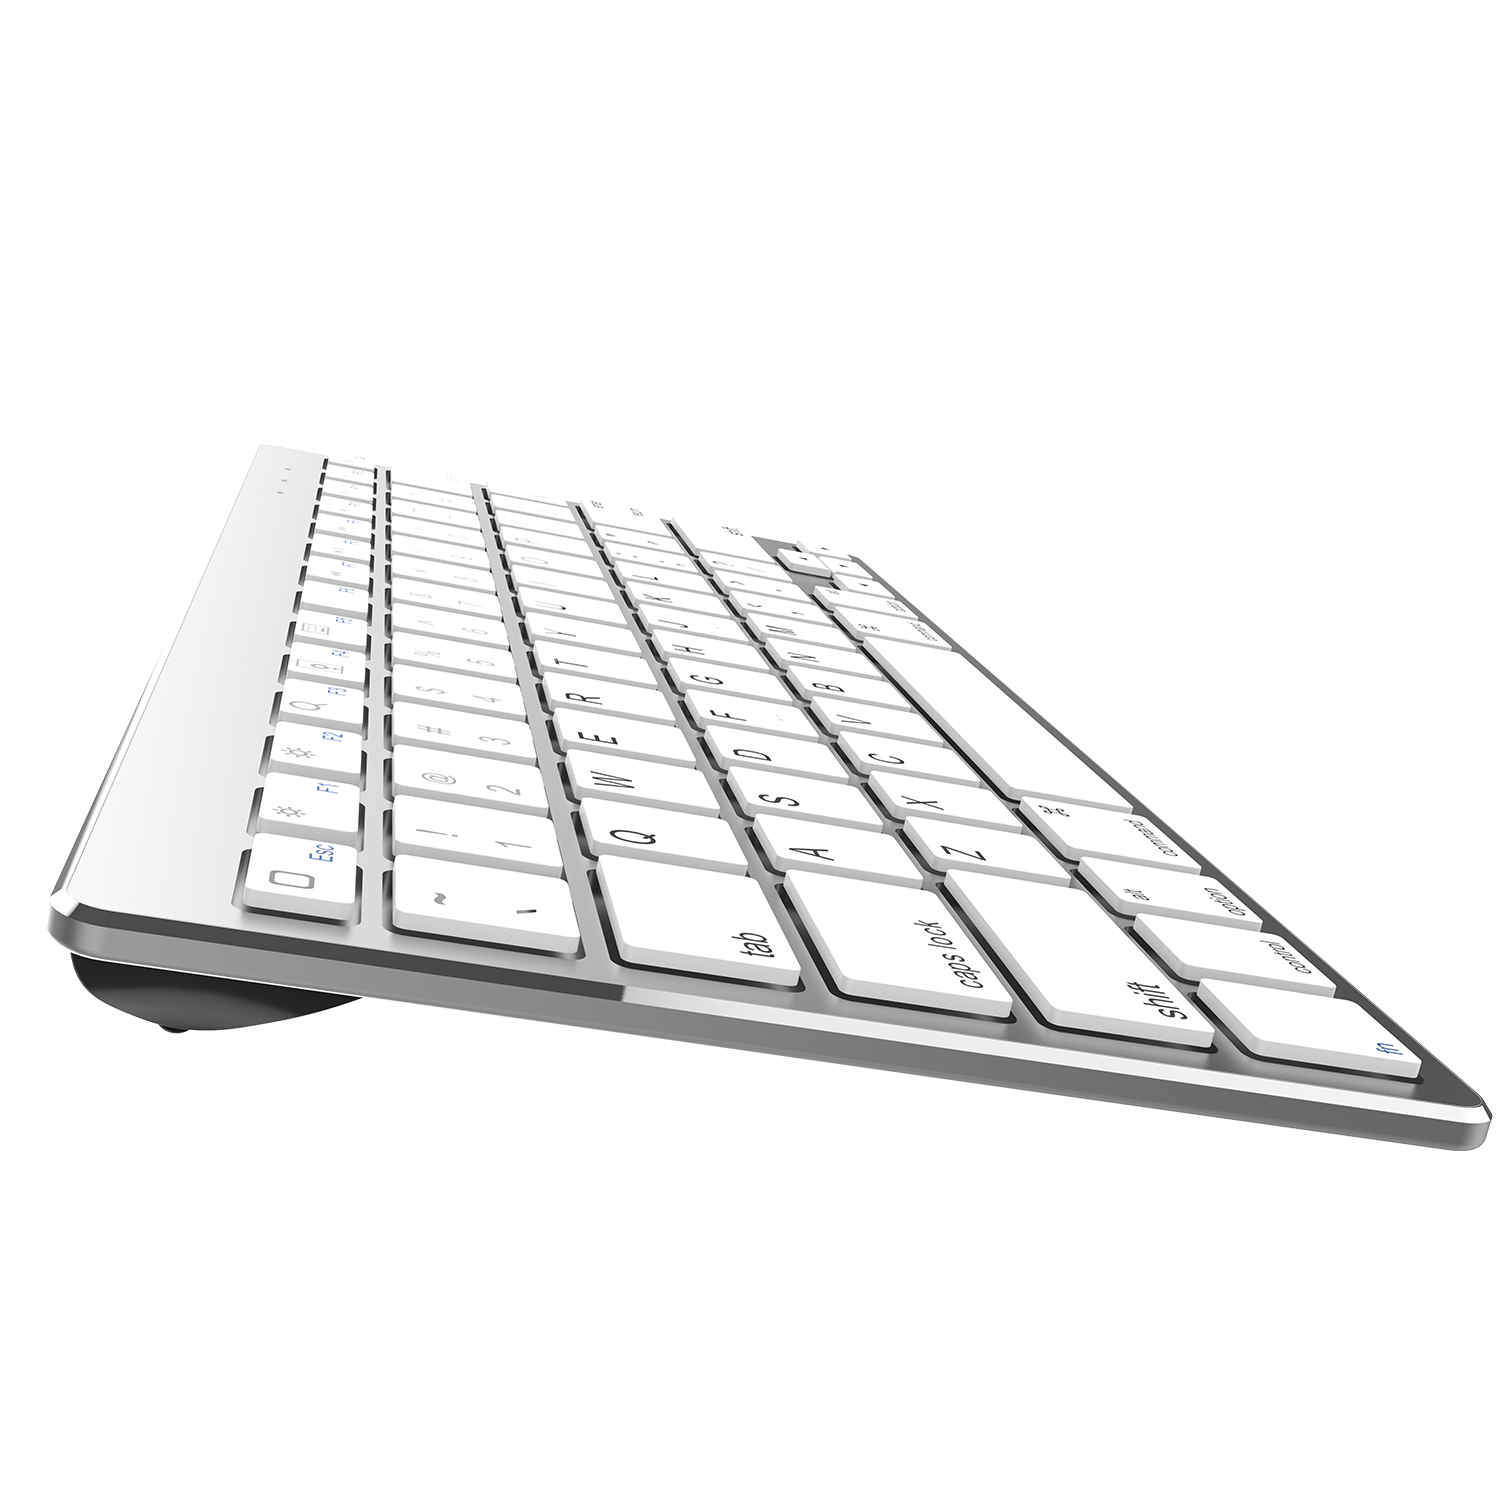 2020 IOS Teclado Metal Aluminium Alloy 78 Key Ergo Wireless Computer Laptop Keyboard for Apple Mac iMac Macbook pro iPad 12.9